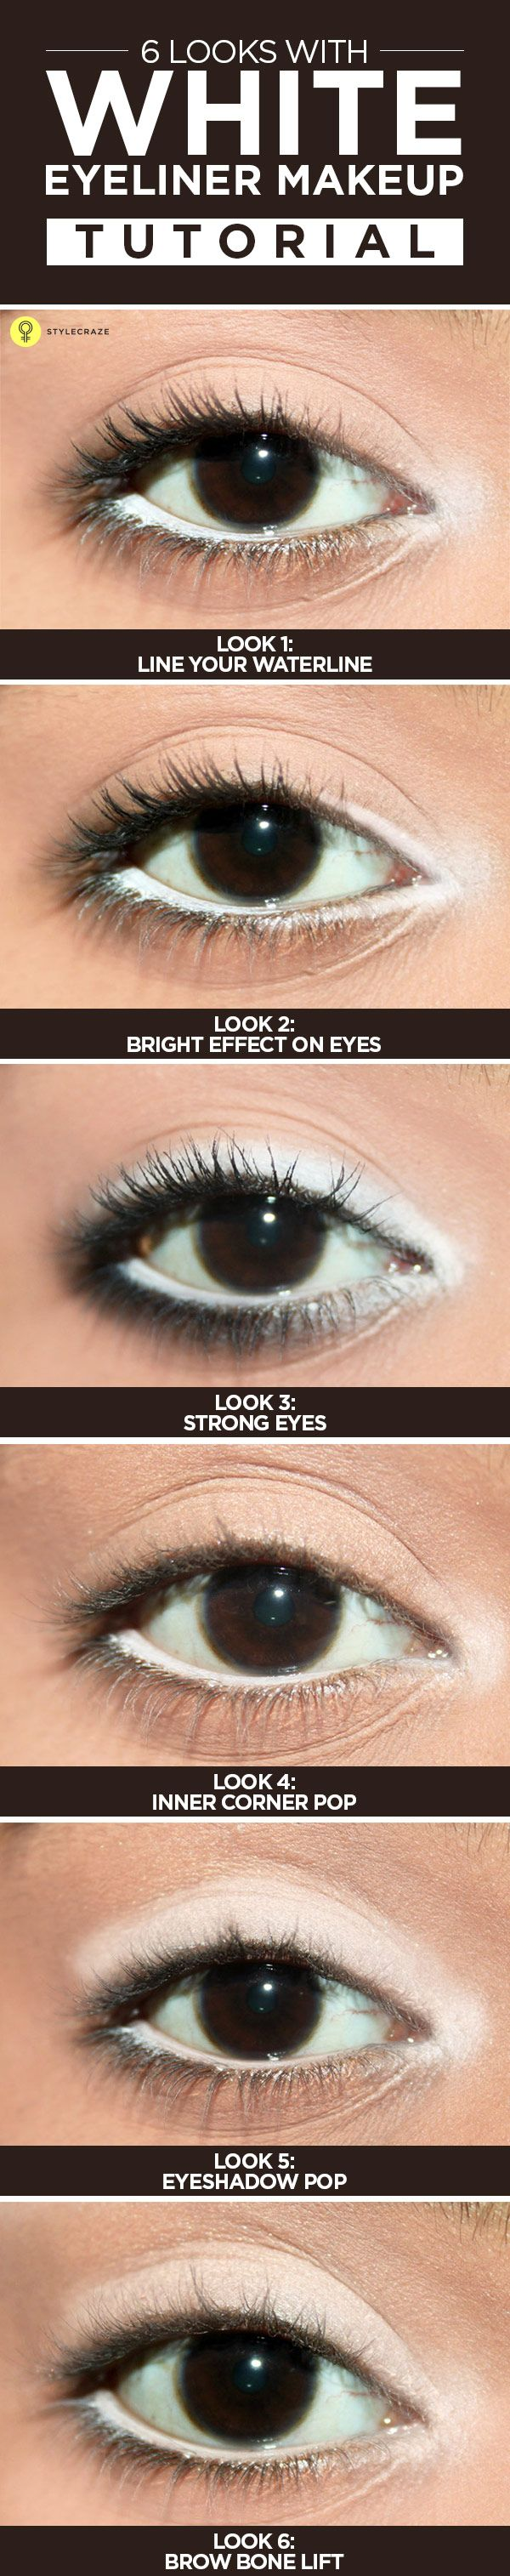 eye liner make up tutorial